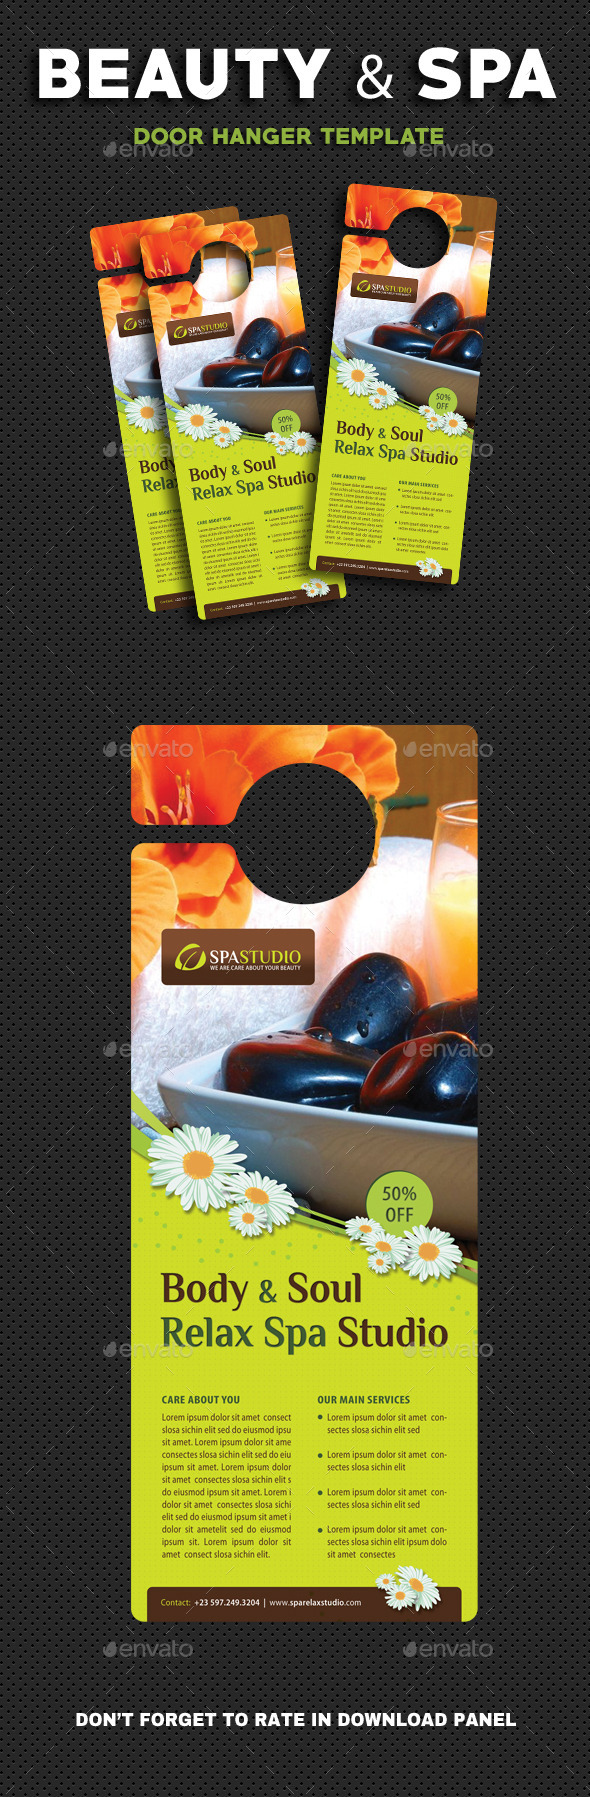 Beauty And Spa Door Hanger V2 - Miscellaneous Print Templates